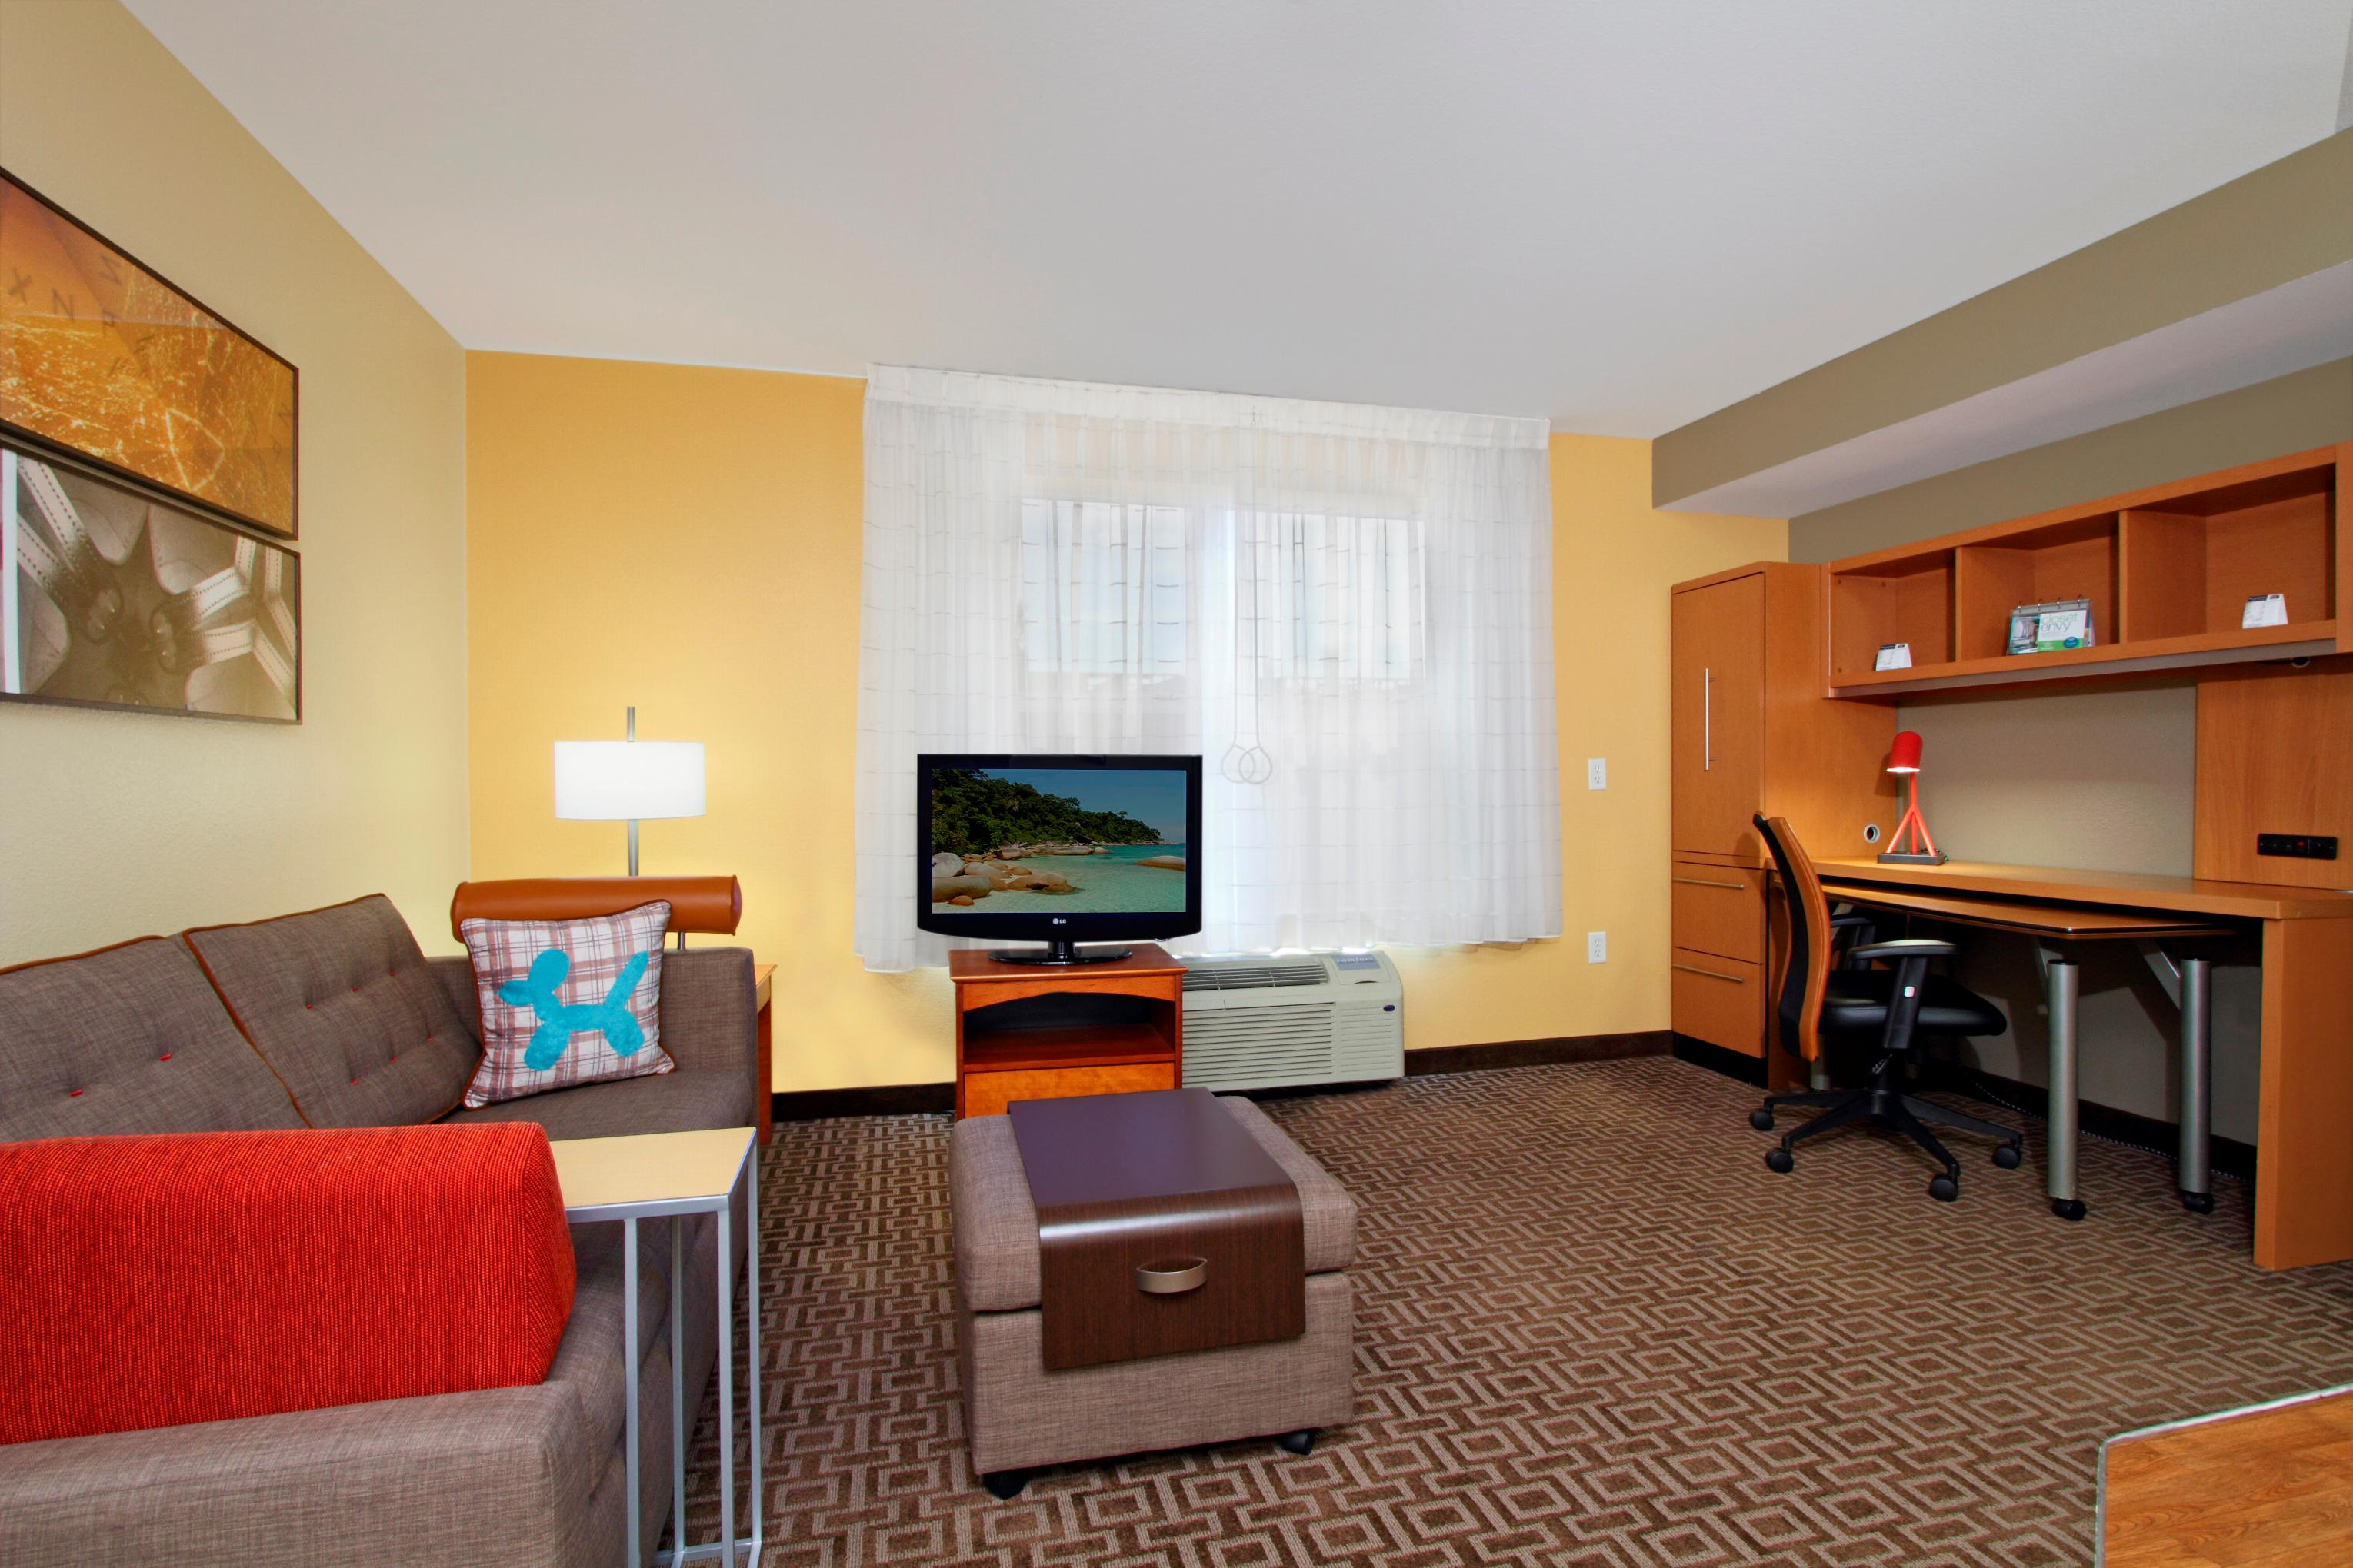 TownePlace Suites by Marriott Newark Silicon Valley image 3